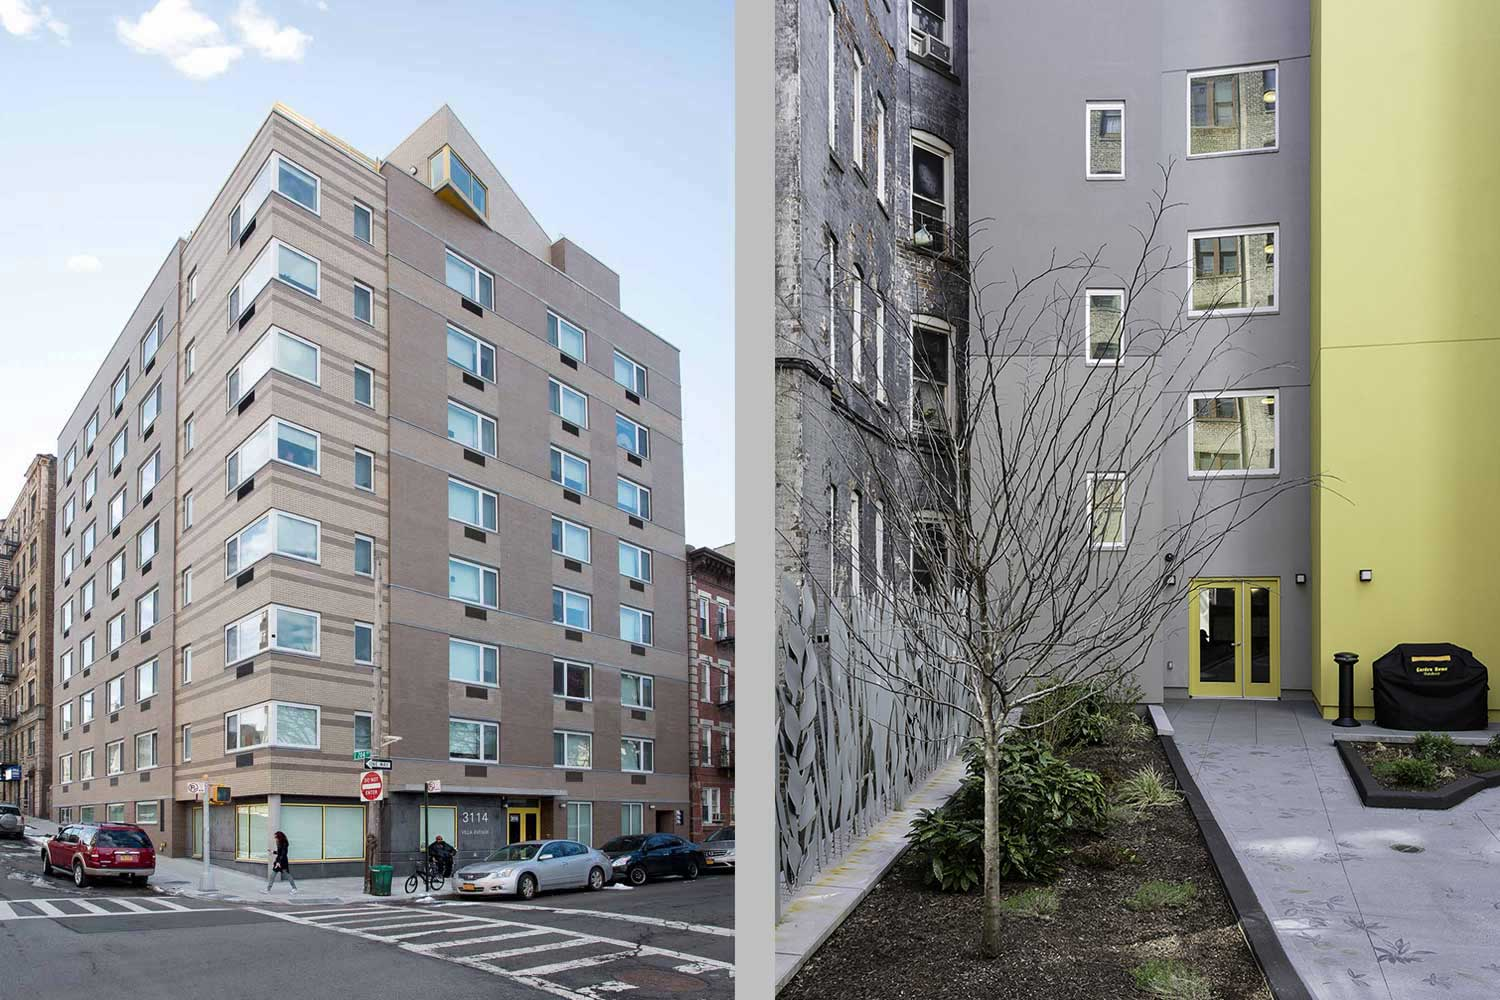 The Villa is a supportive housing new construction in the Bronx by OCV Architects.